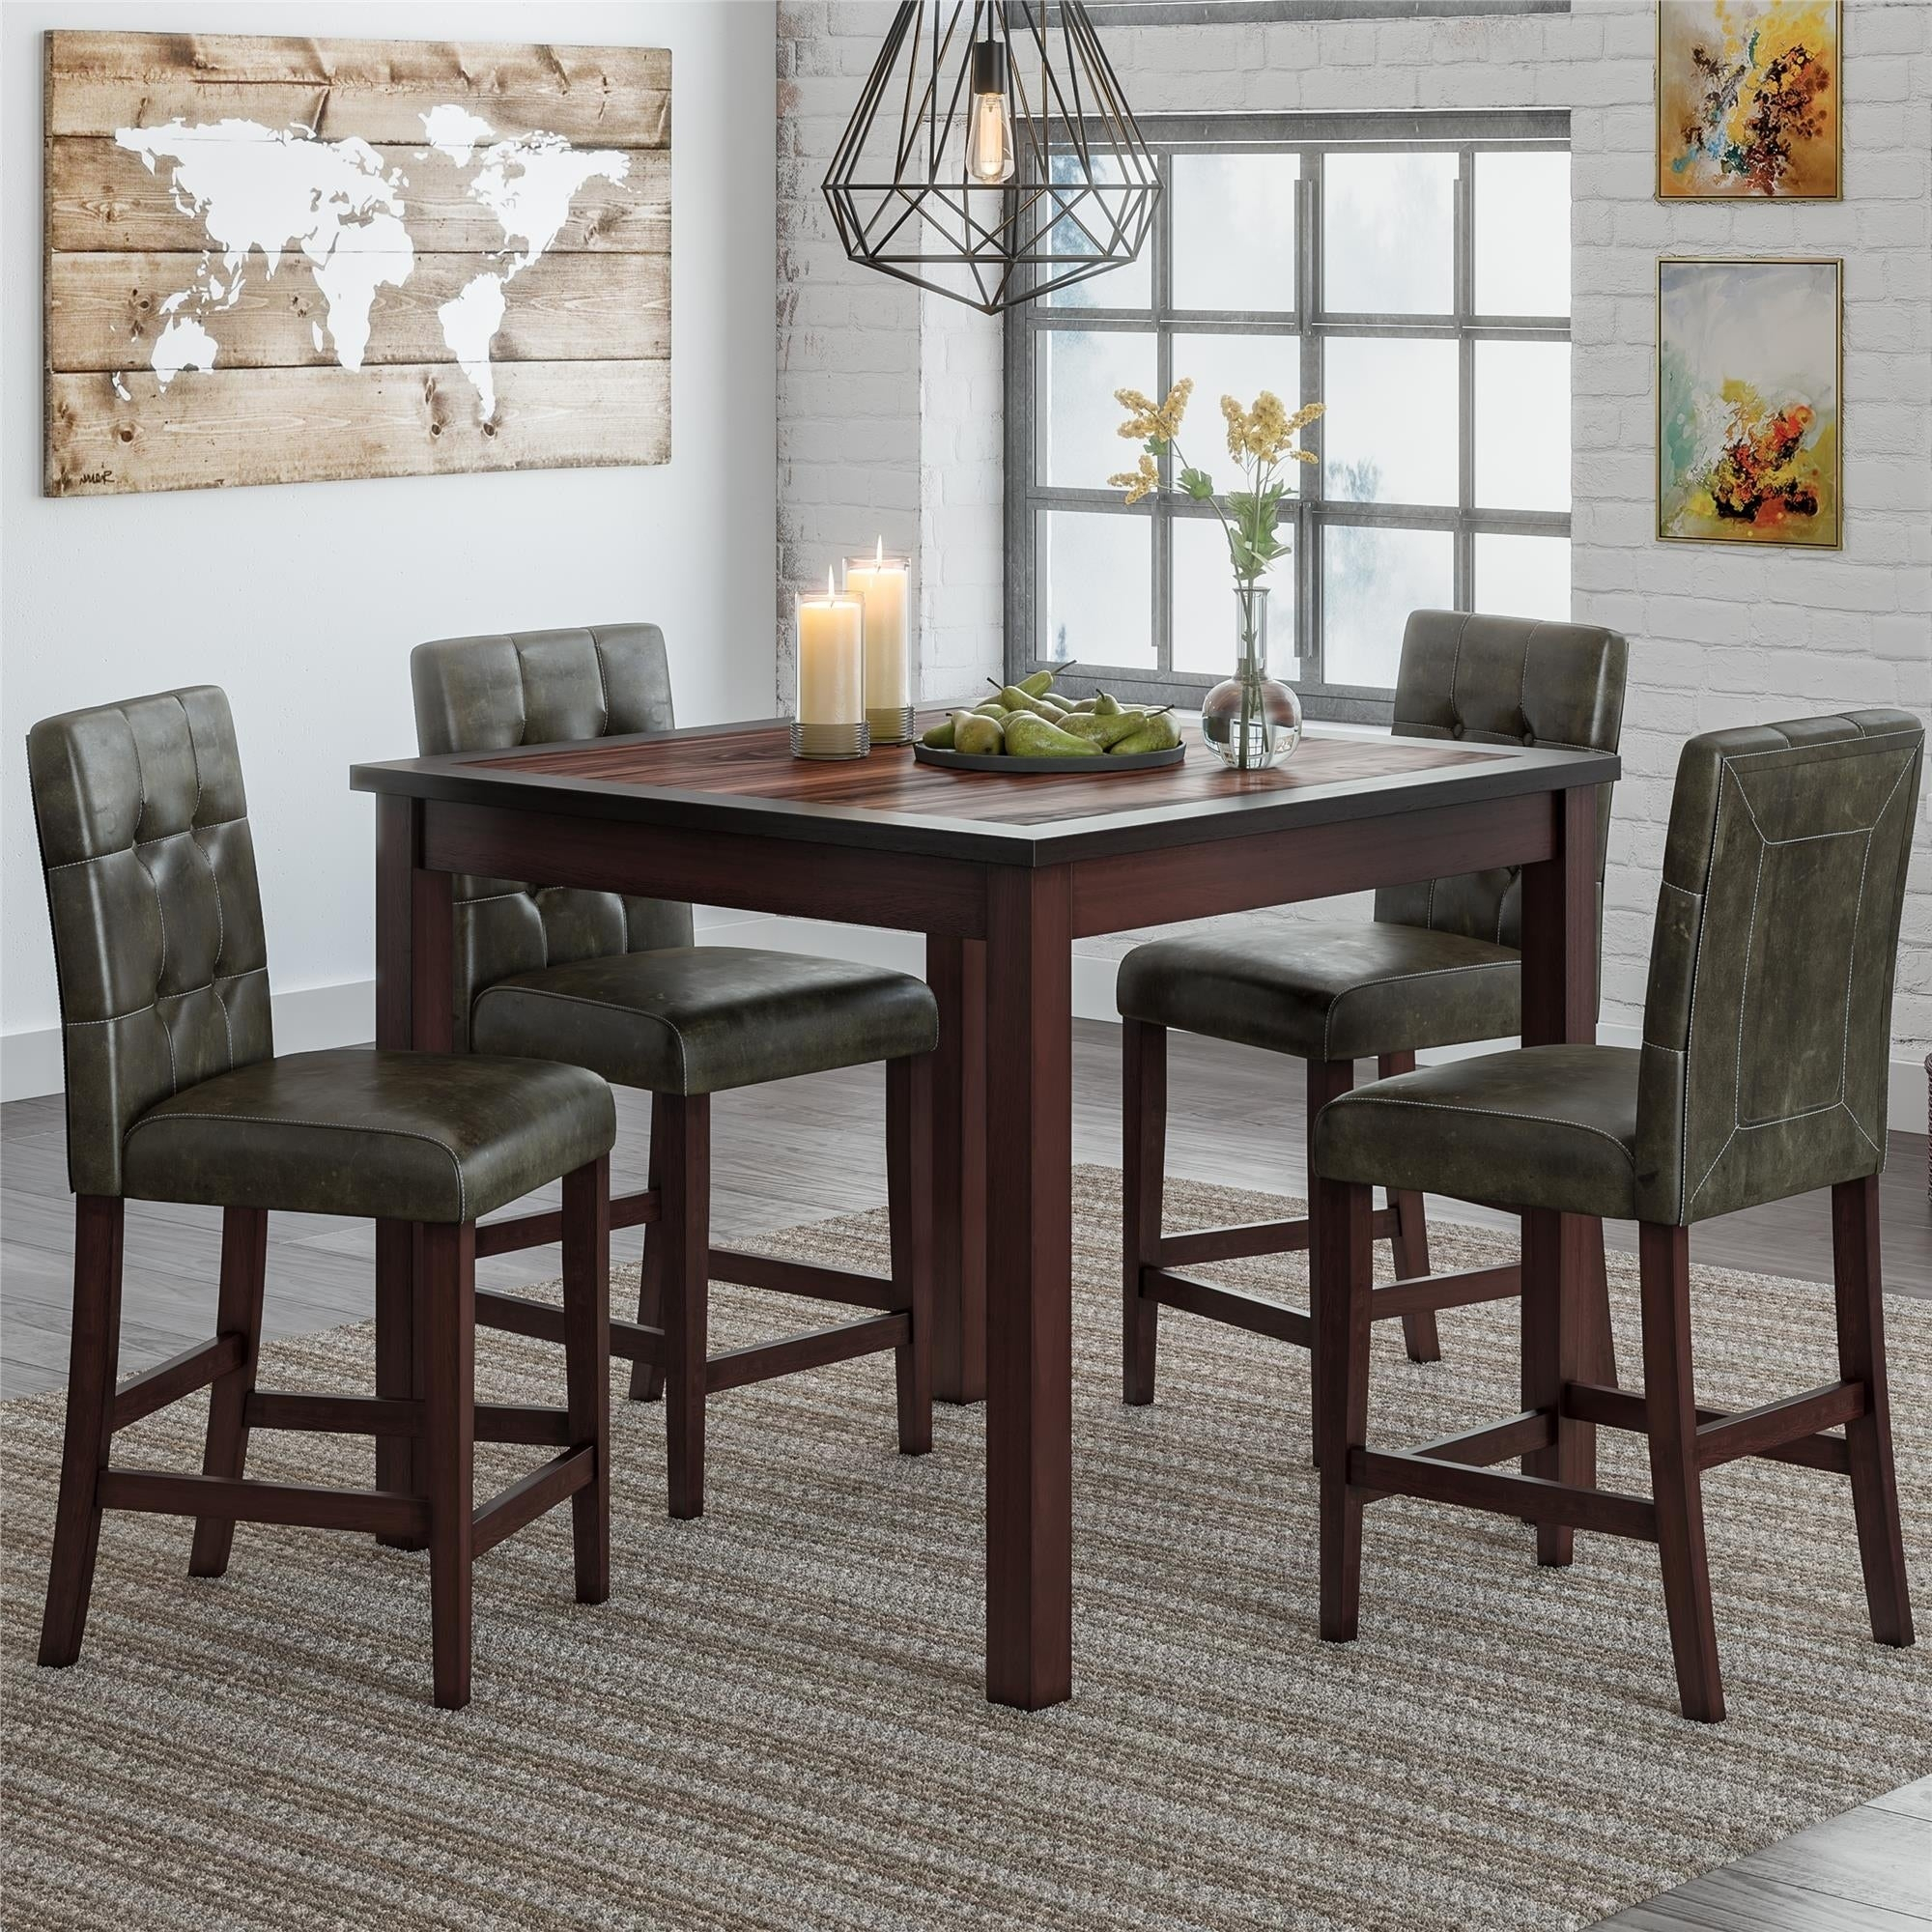 Bettencourt 3 Piece Counter Height Solid Wood Dining Sets Pertaining To Most Recently Released Shop Gracewood Hollow Betancourt Espresso 5 Piece Counter Height (#6 of 20)